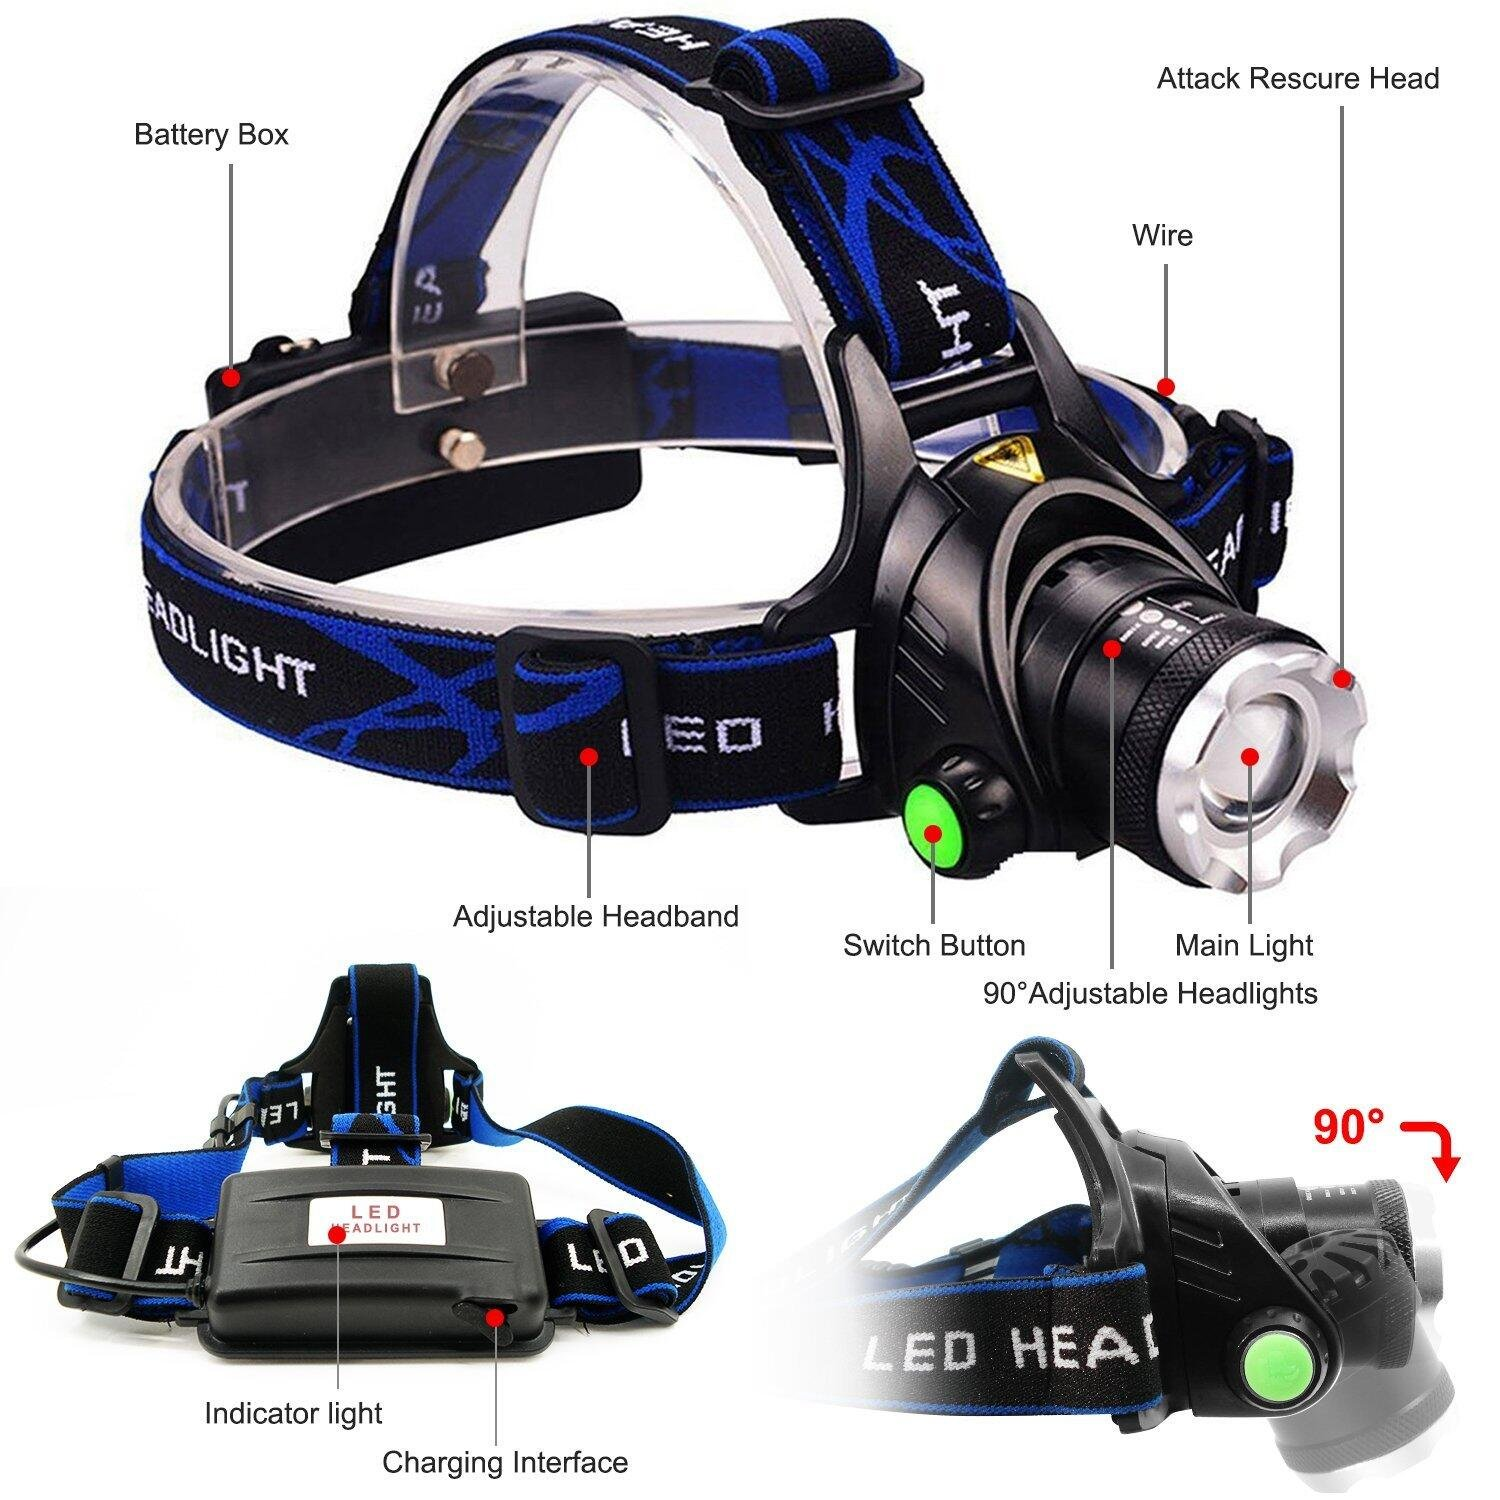 USB Rechargeable LED Headlamp Aidisun High Lumen Waterproof Headlight Zoomable Hand Free Flashlight Best for Camping Hiking Hunting Outdoor Sport or Home Emergency (18650 Battery Included) by Aidisun (Image #4)